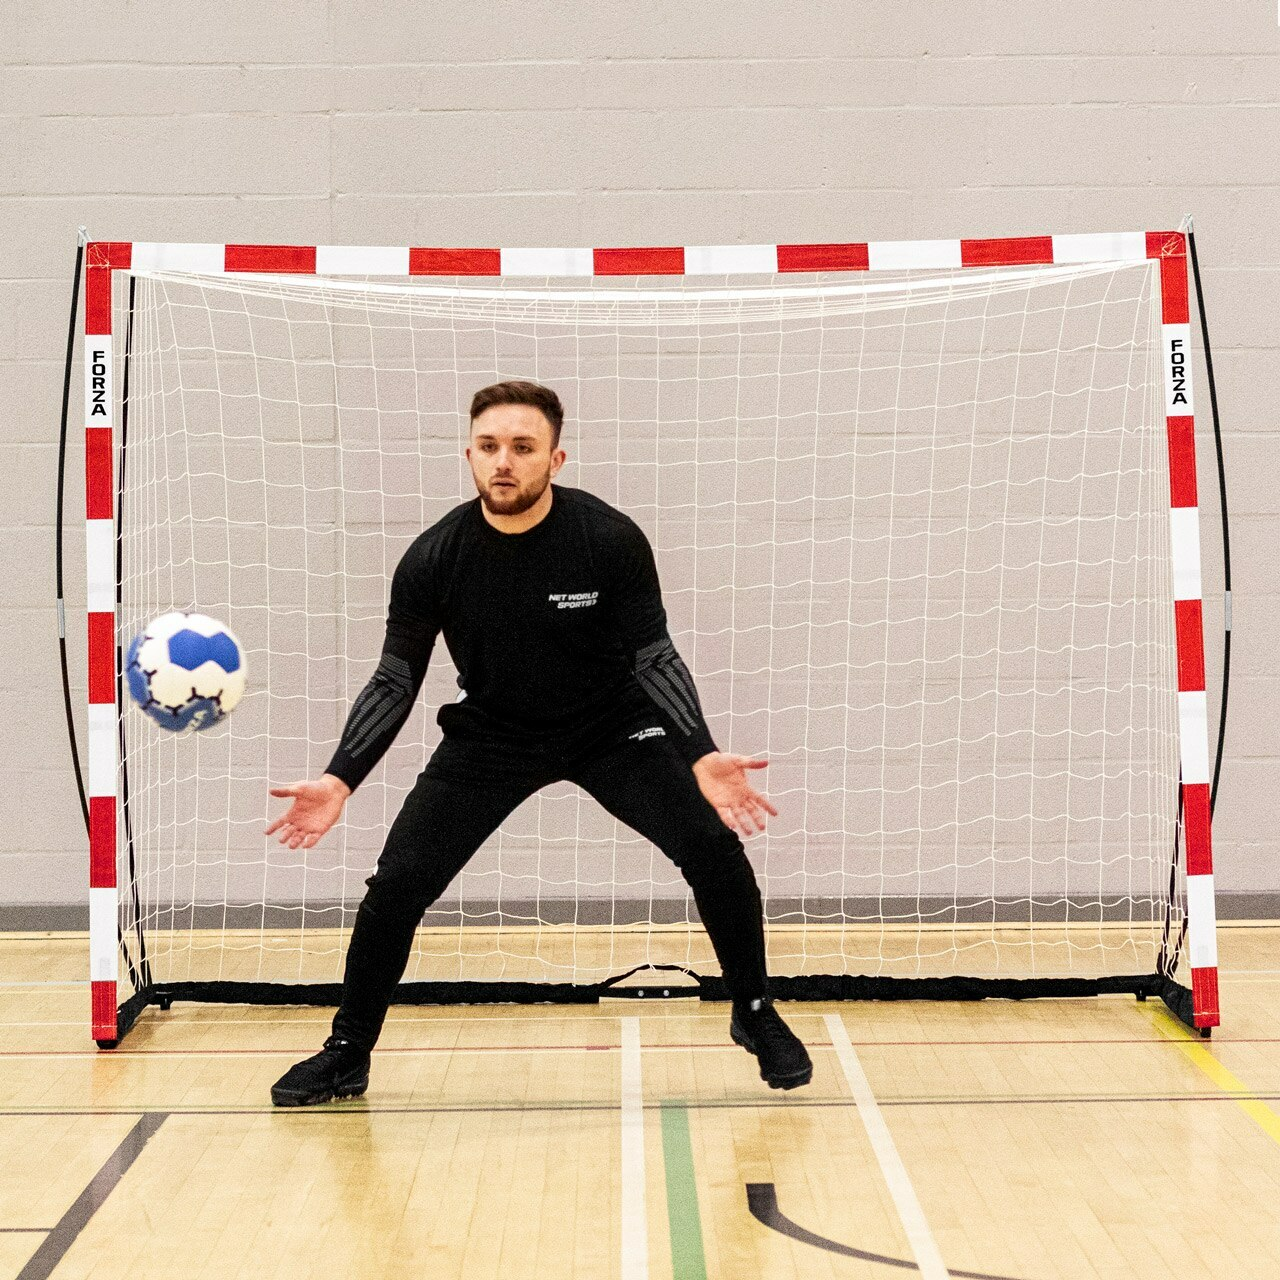 Freestanding Handball Goals | Suited To All Surfaces